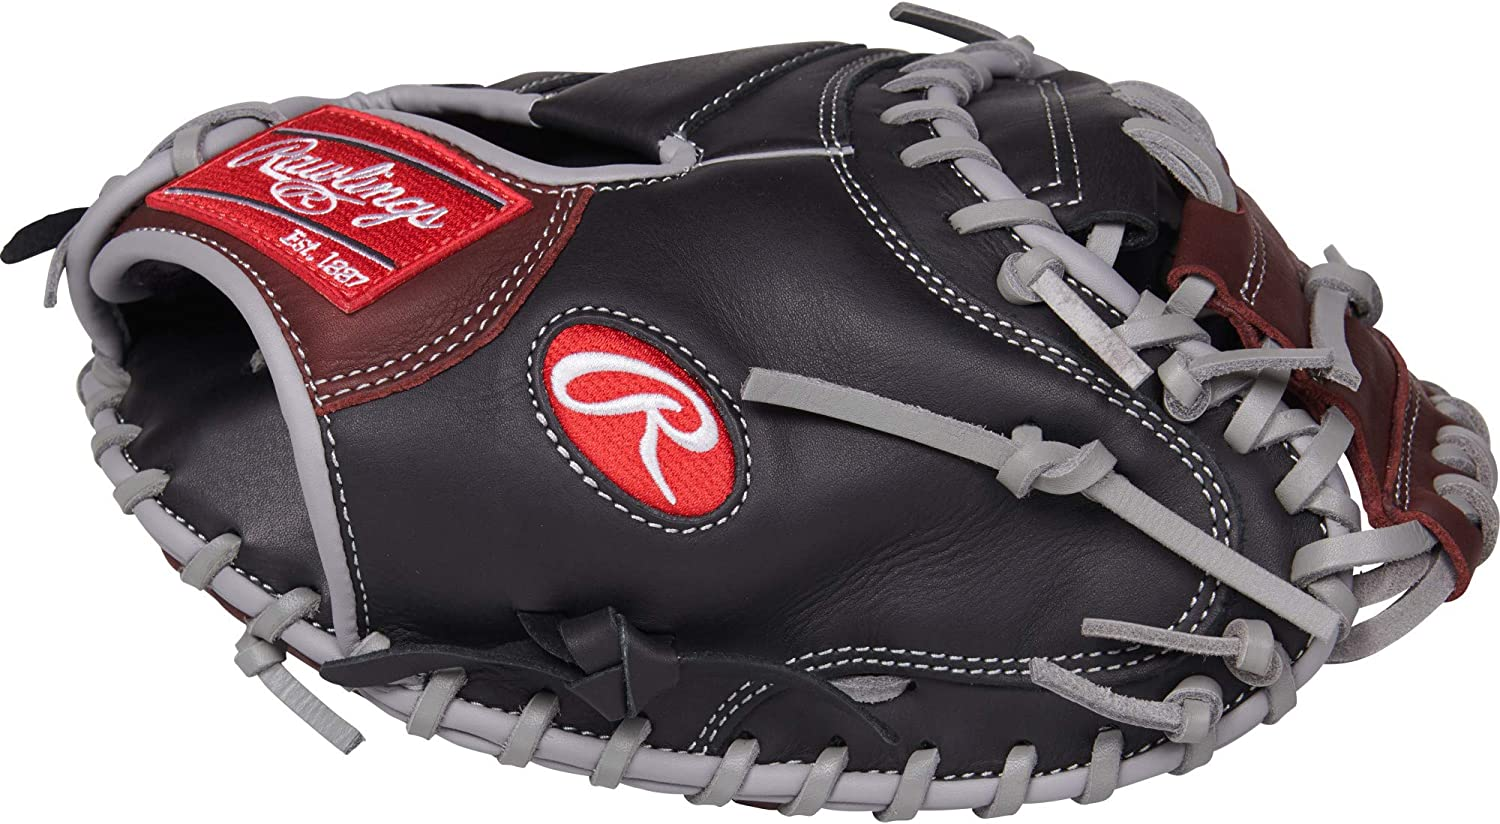 Rawlings R9 Baseball Gloves Series